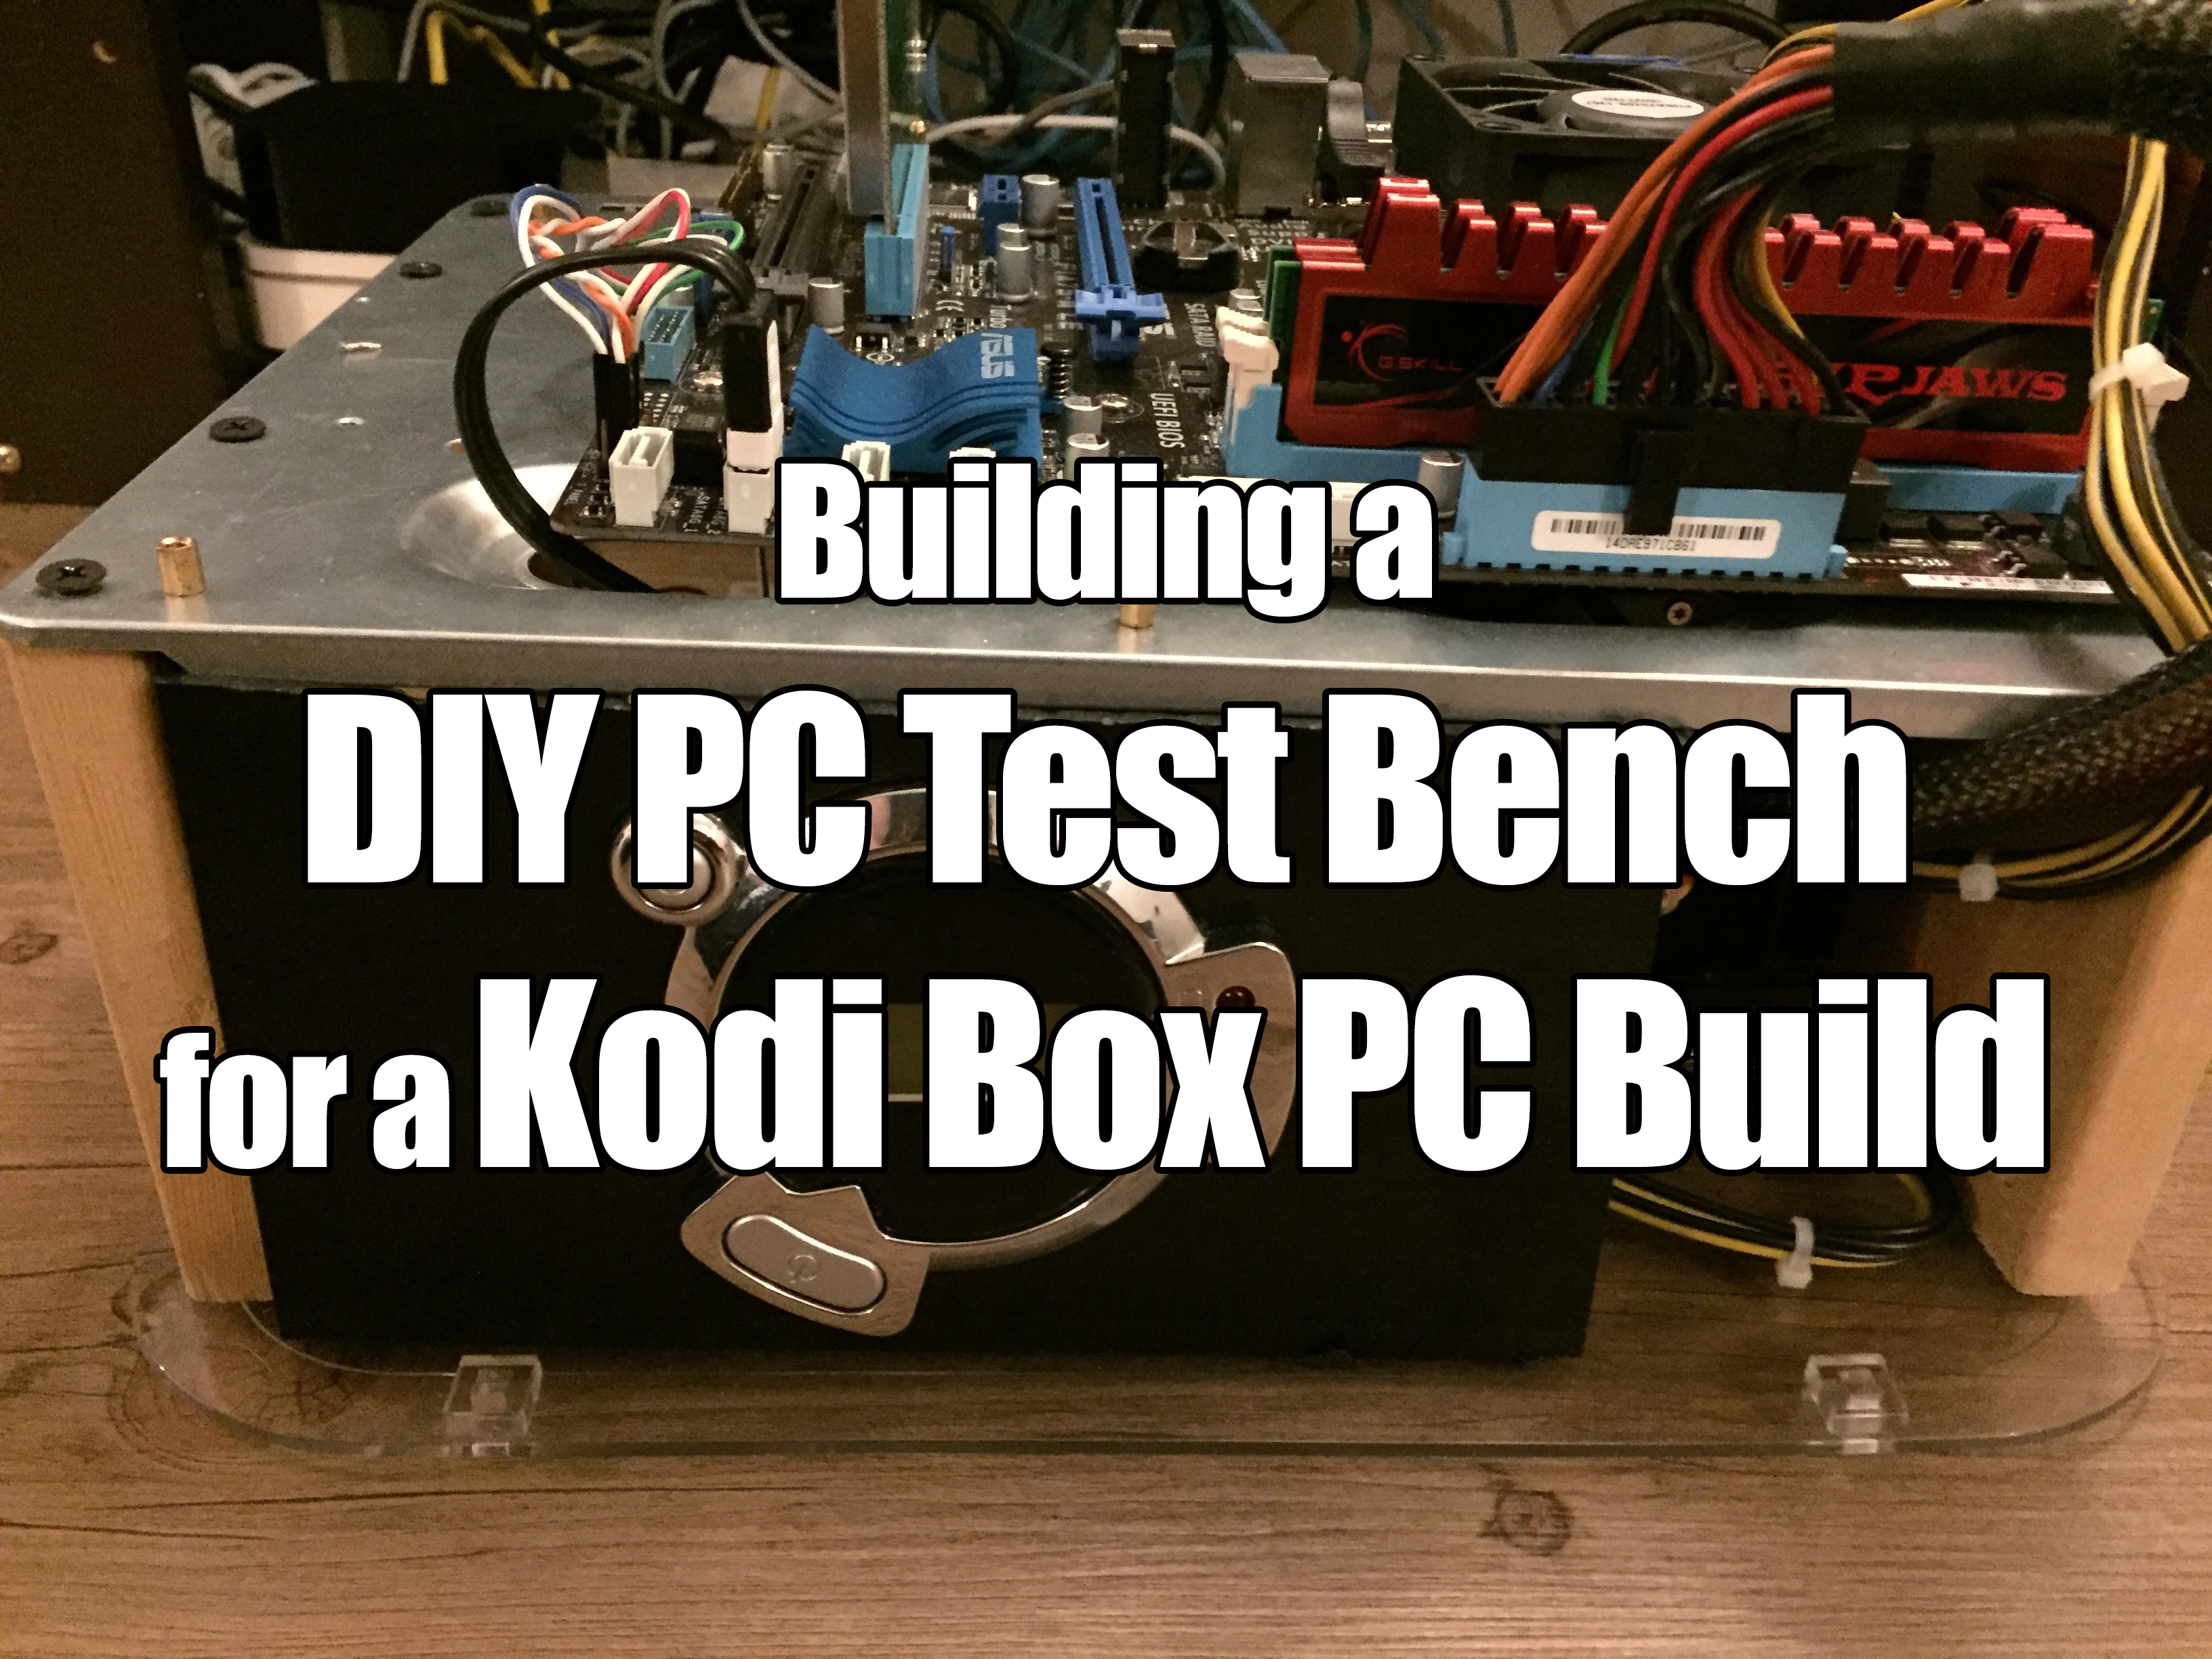 Diy Pc Test Bench Newb Computer Build